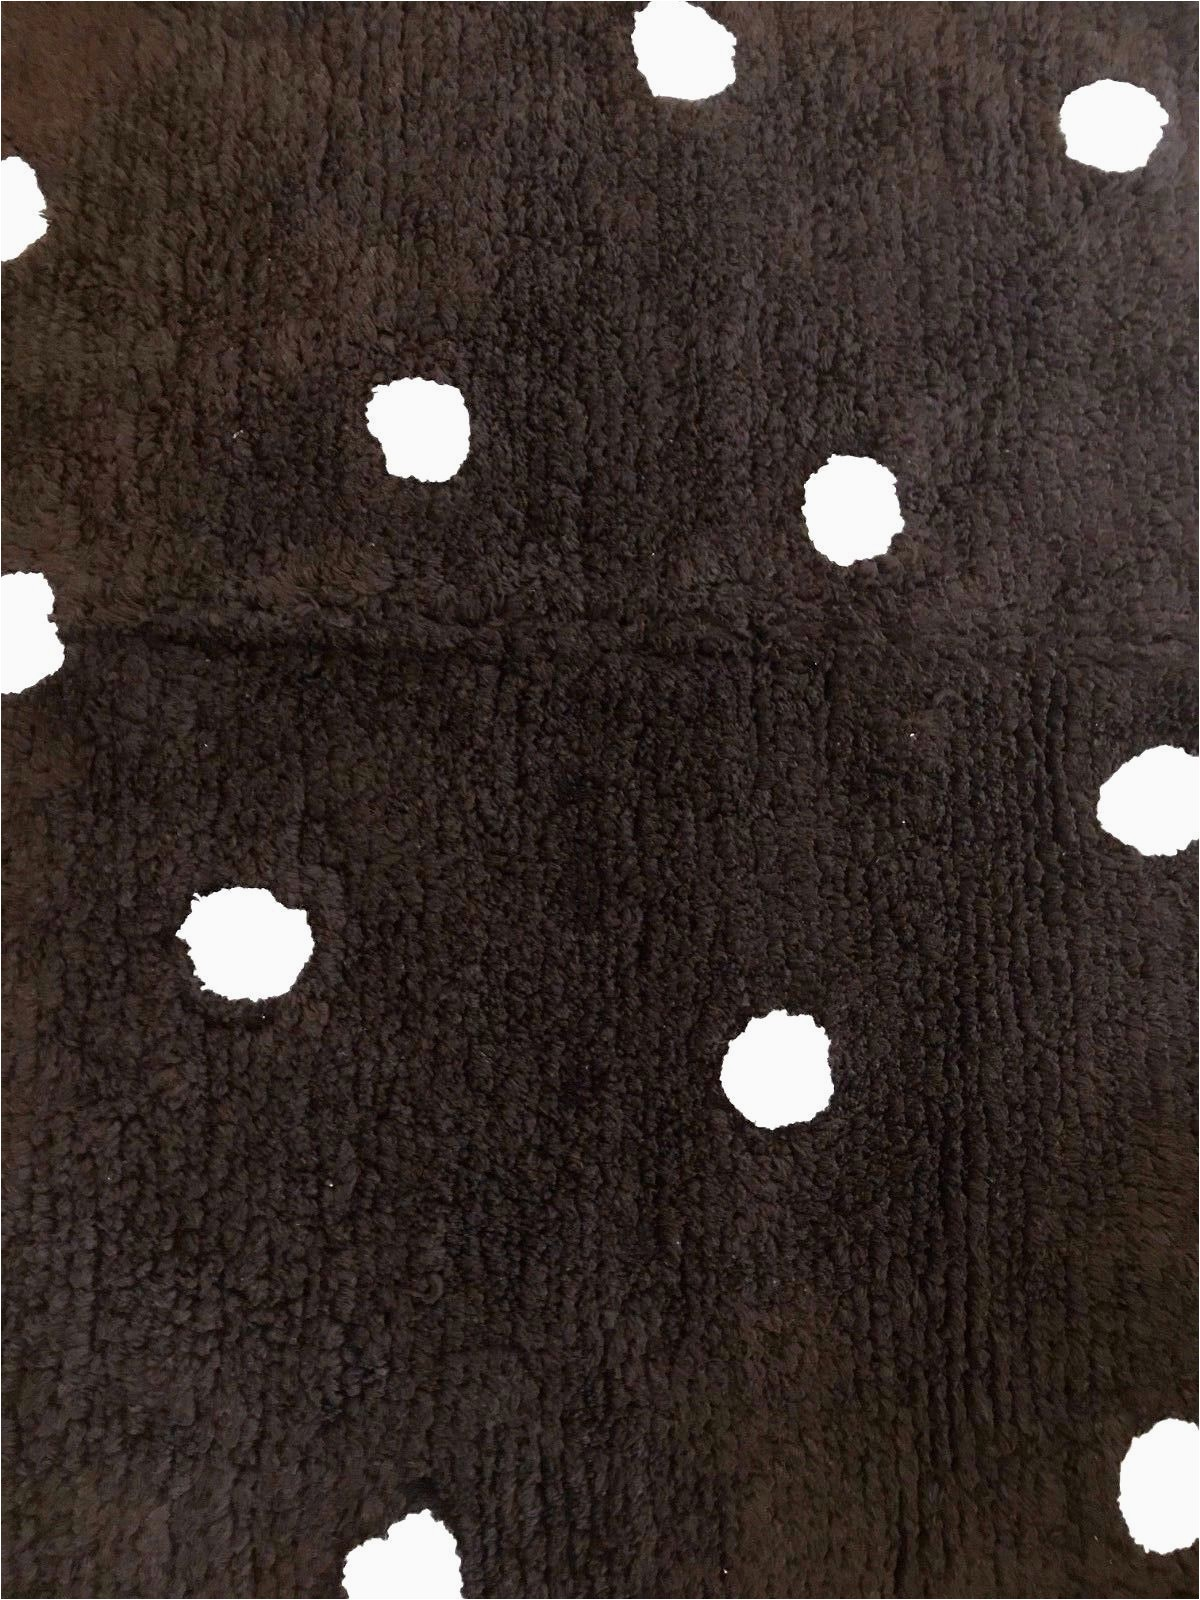 Kate Spade Deco Dot Bath Rug Kate Spade New York Deco Dot Bath Rug Mat Black & White 100